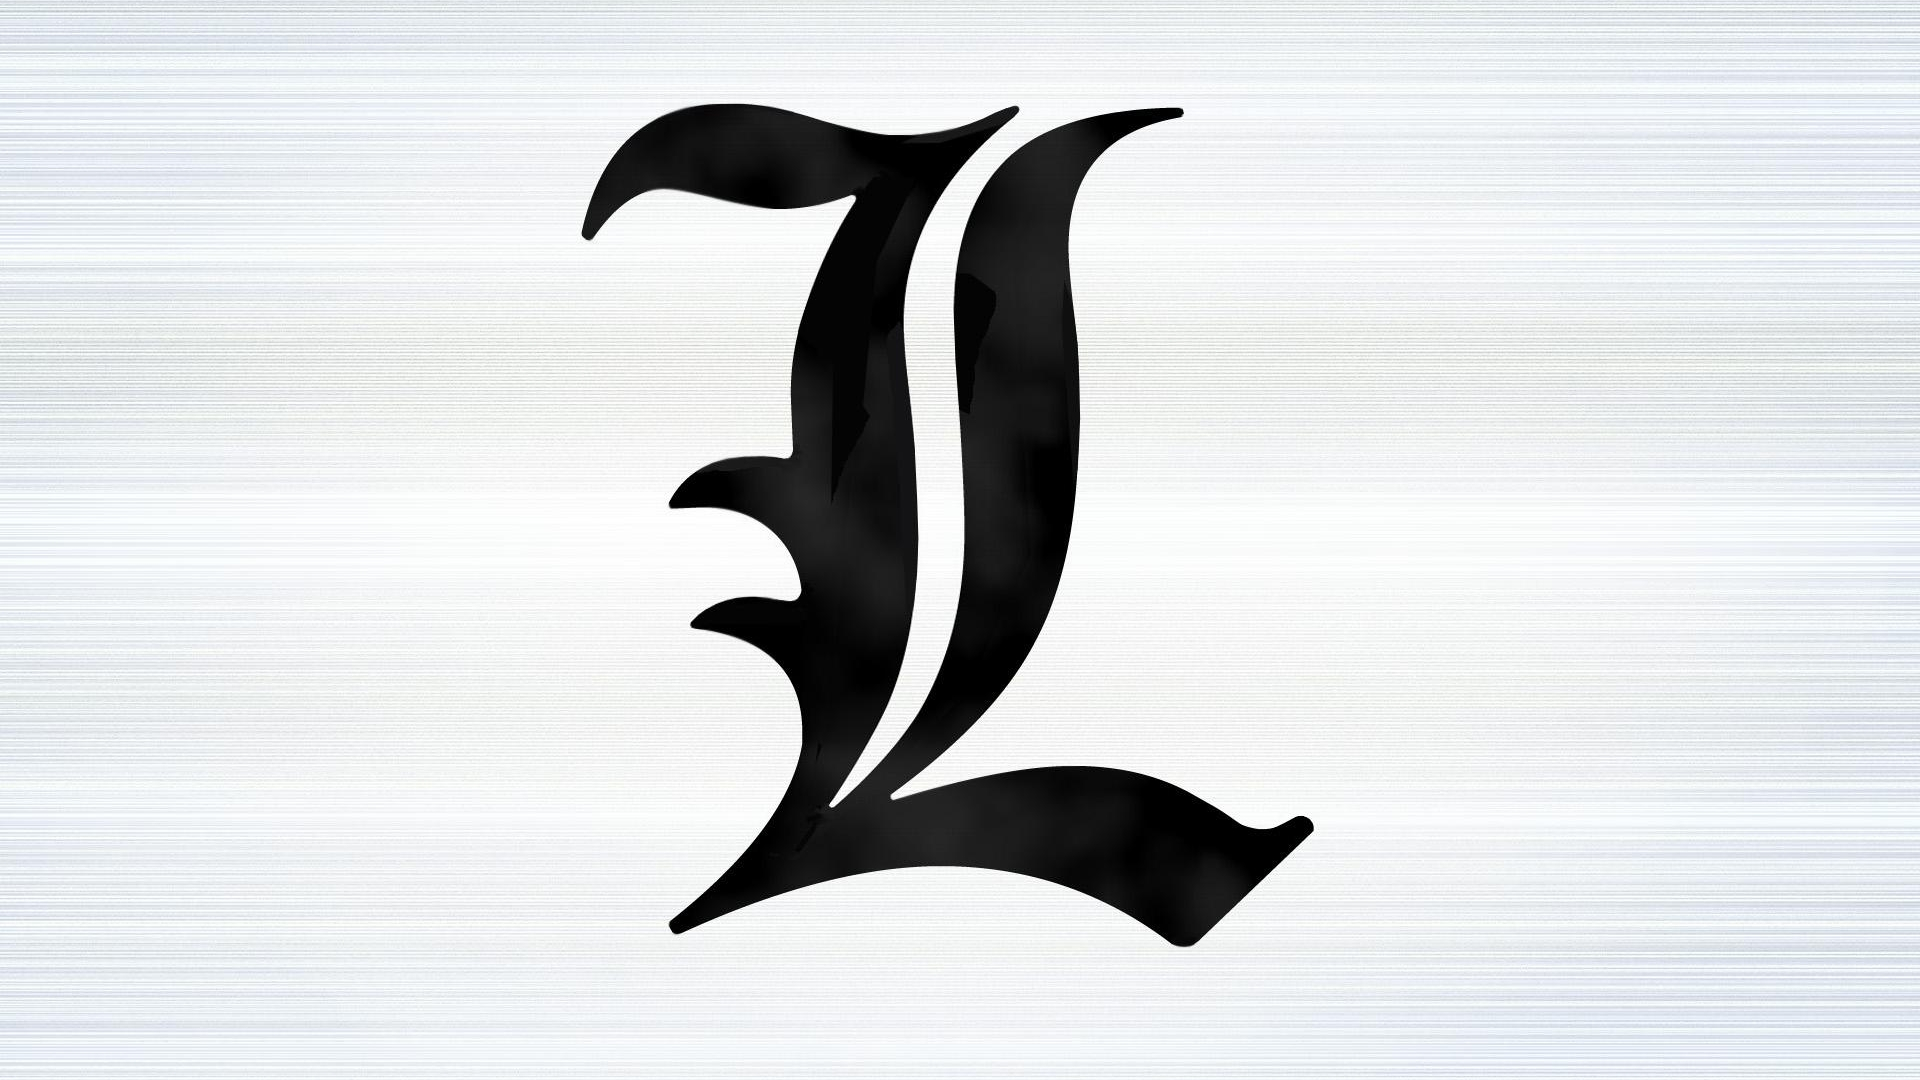 Death Note HD Wallpaper   Background Image   1920x1080   ID:609608 - Wallpaper Abyss